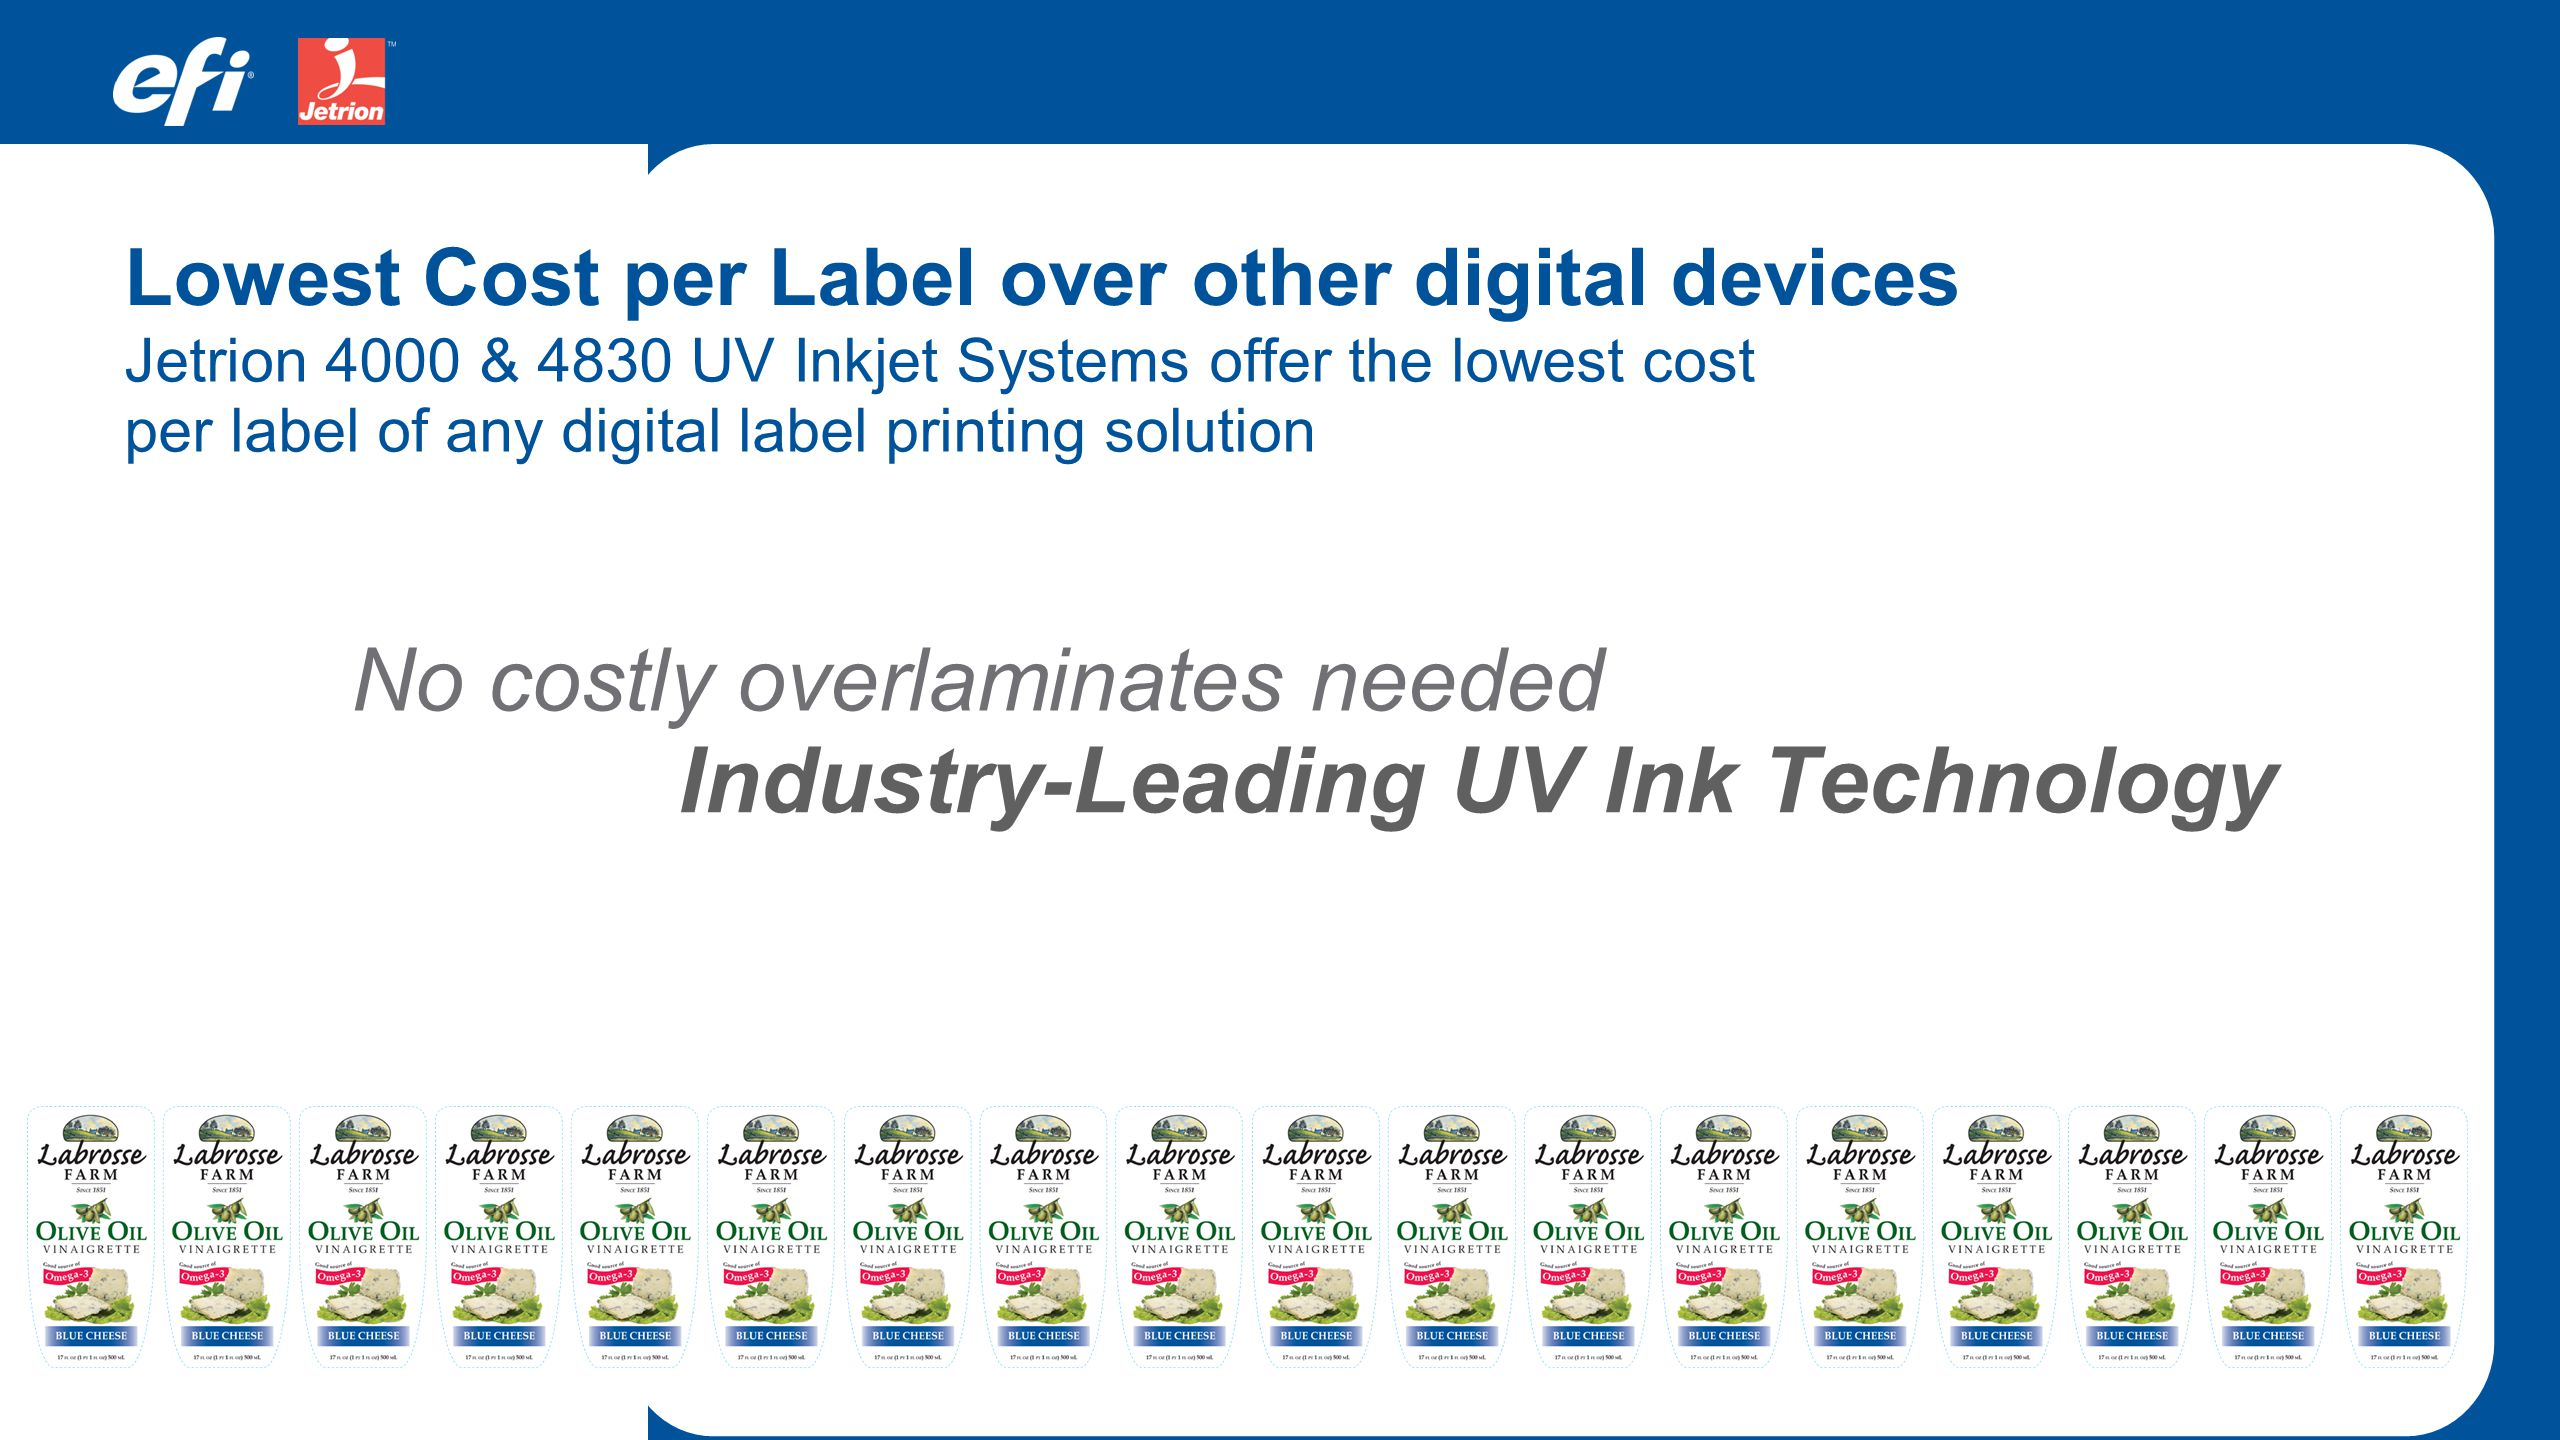 Industry-Leading UV Ink Technology